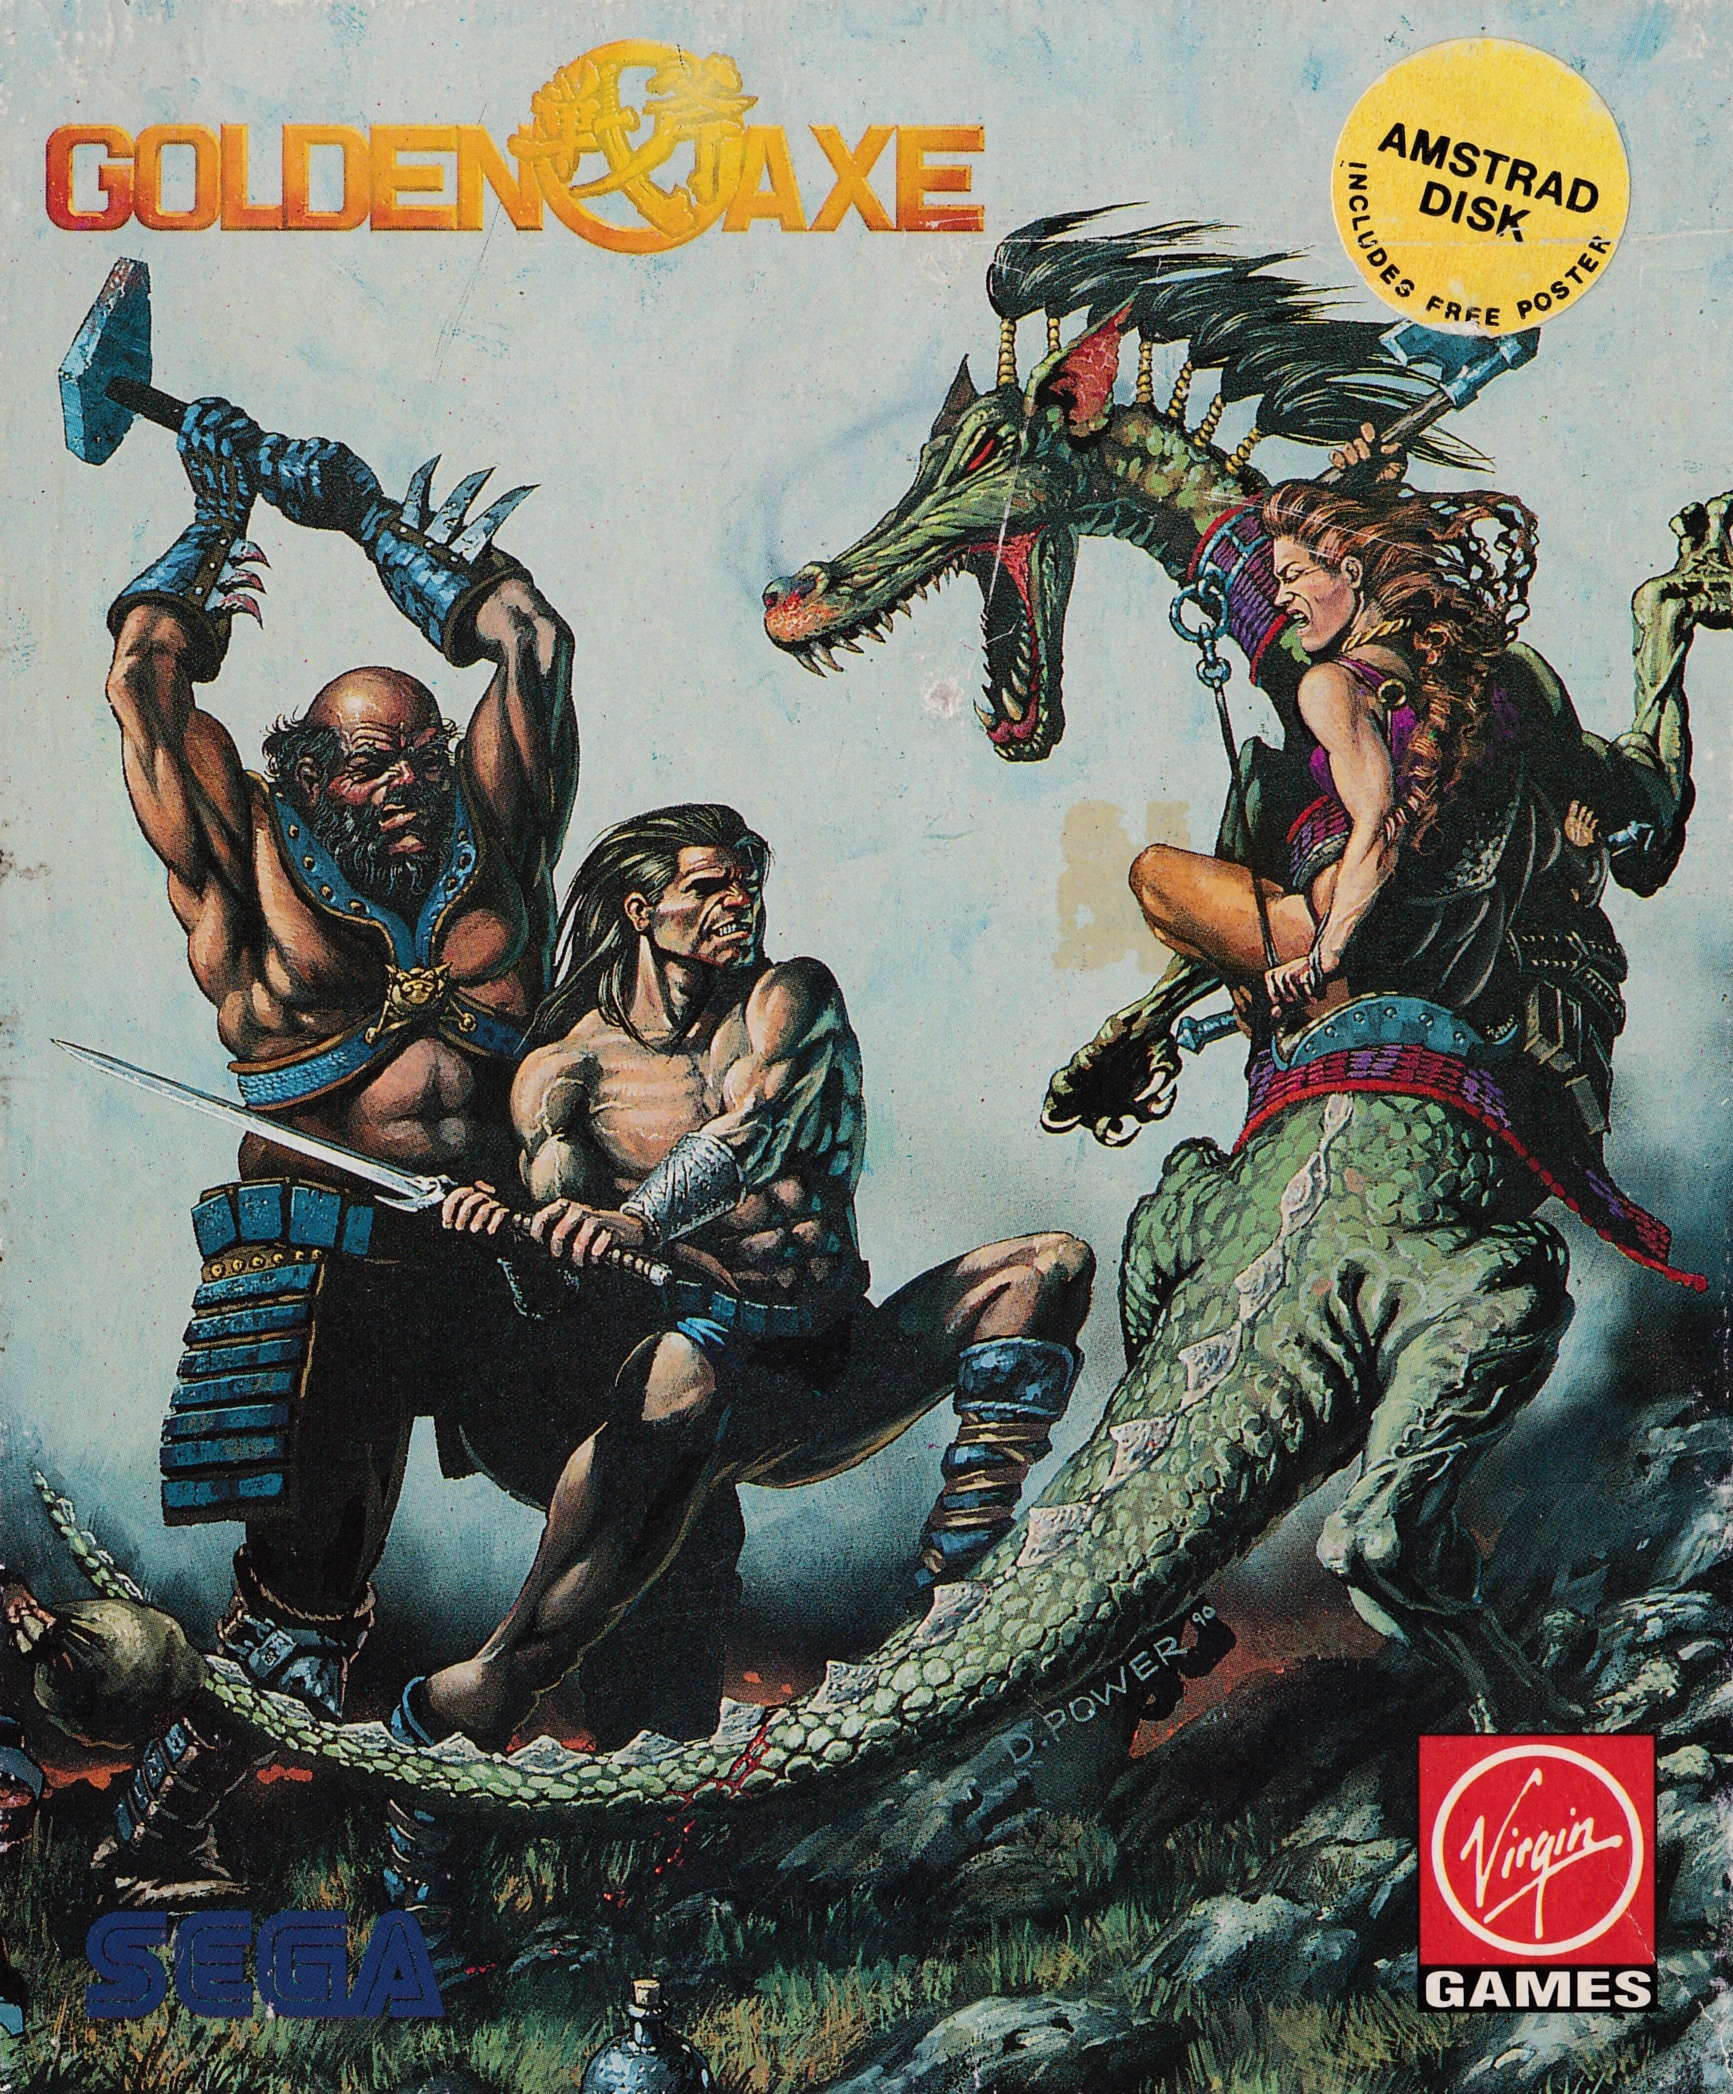 cover of the Amstrad CPC game Golden Axe  by GameBase CPC